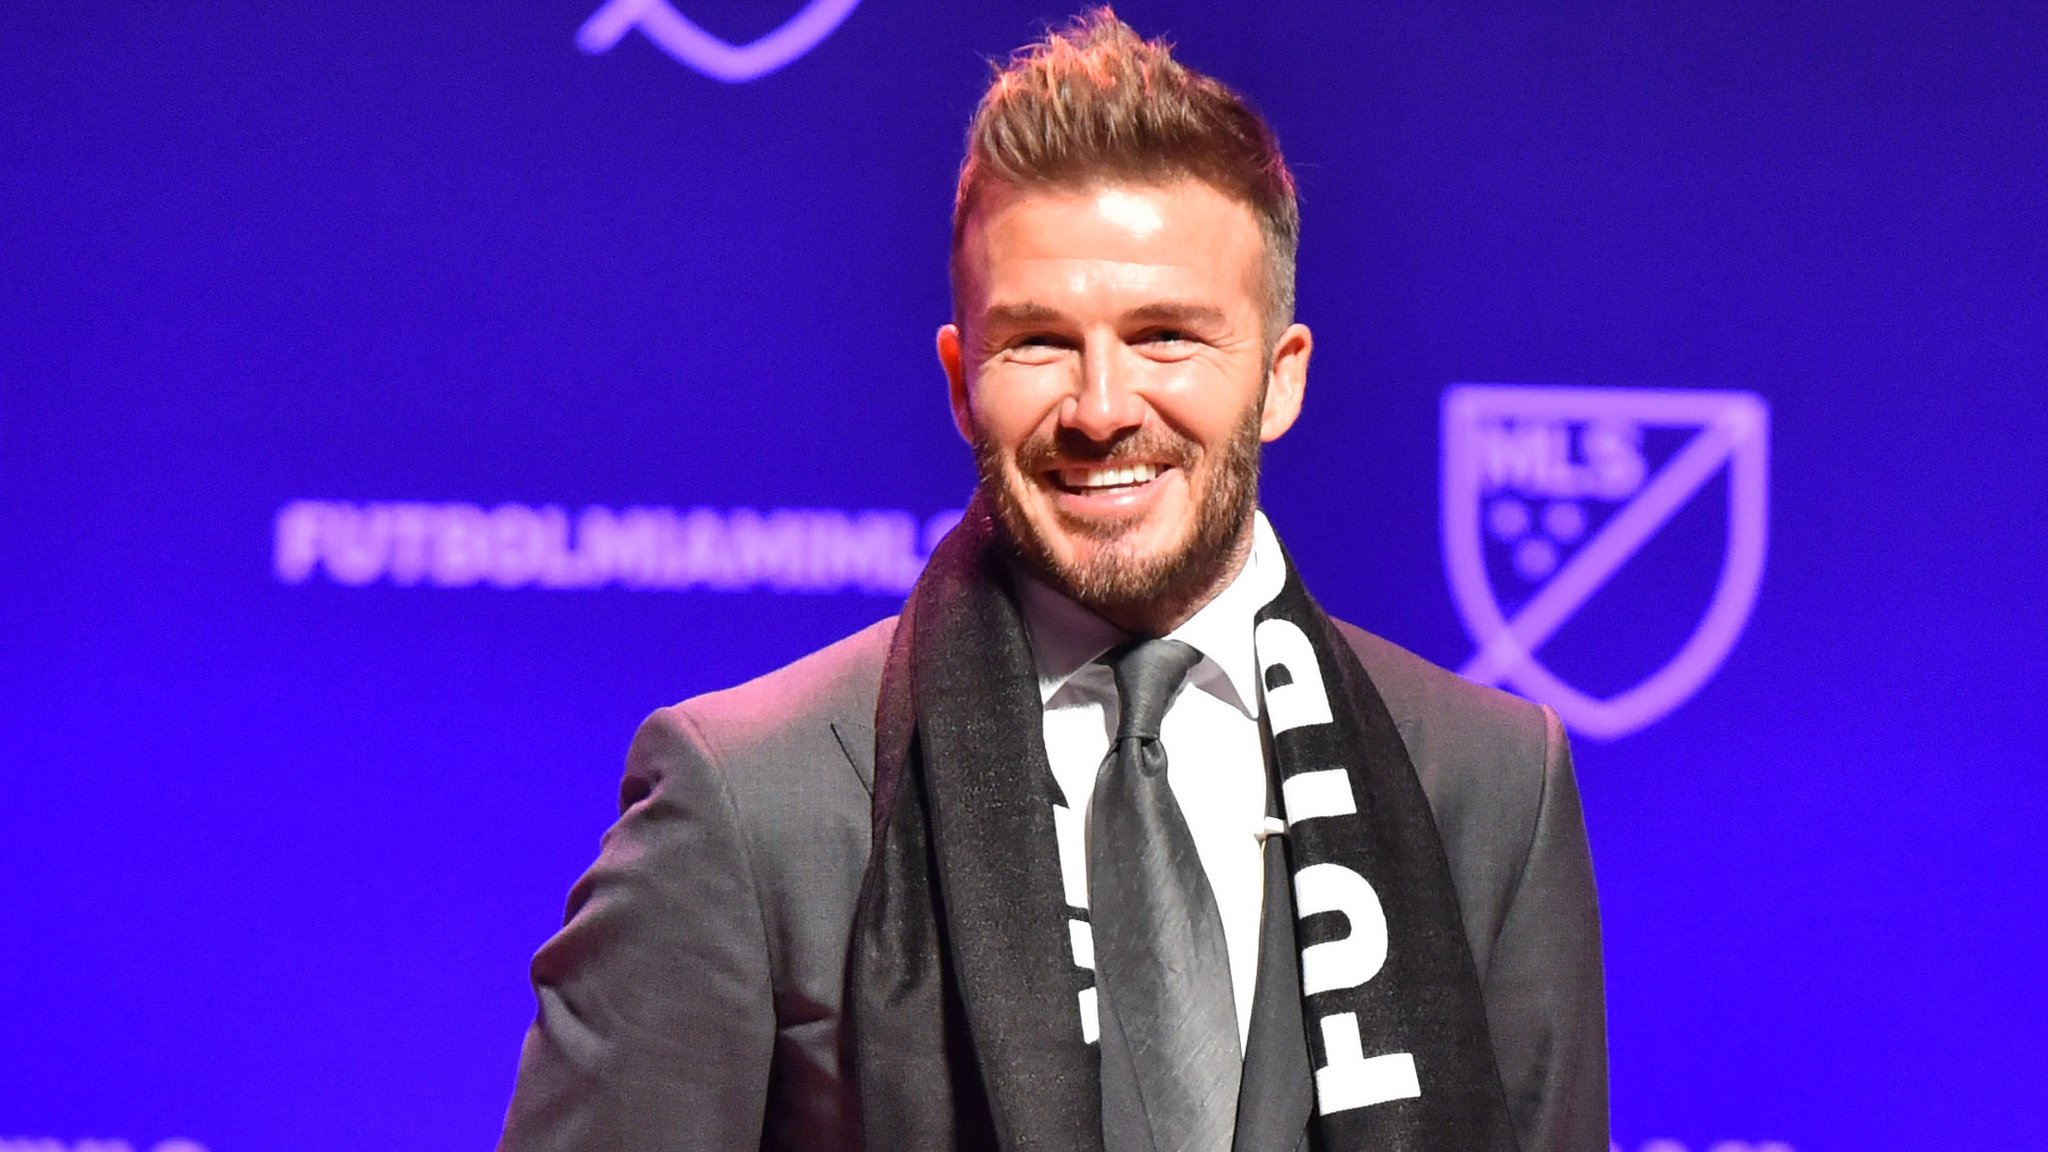 David Beckham: Uefa to honour former England captain with President's Award